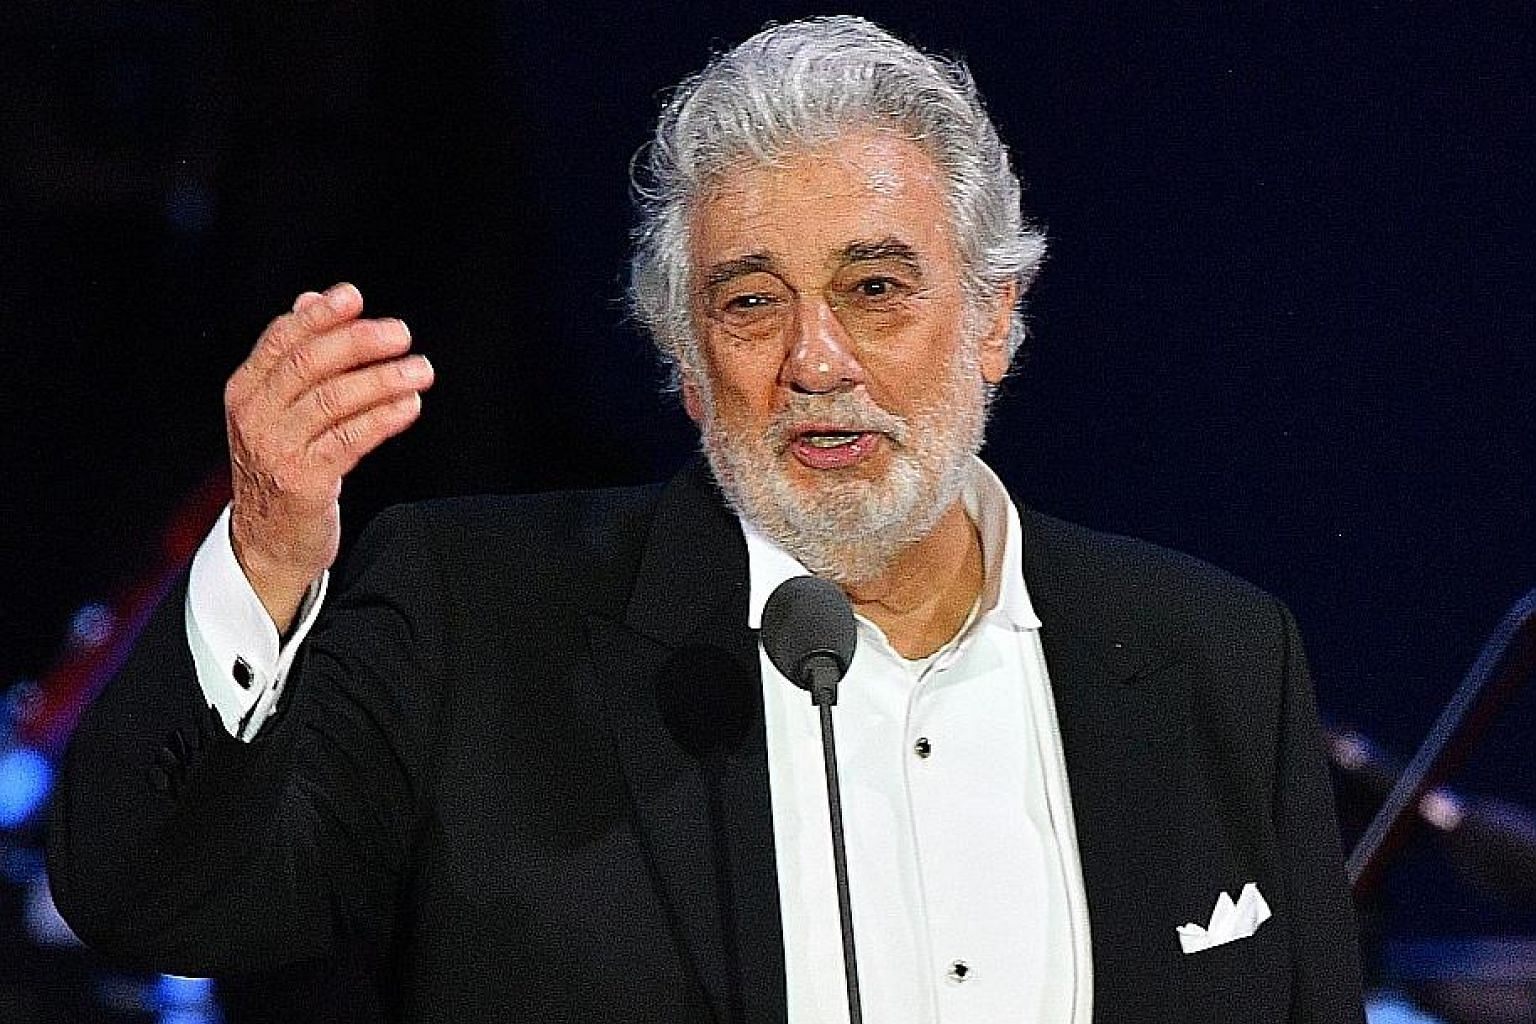 Placido Domingo said on March 22 he had tested positive for Covid-19.